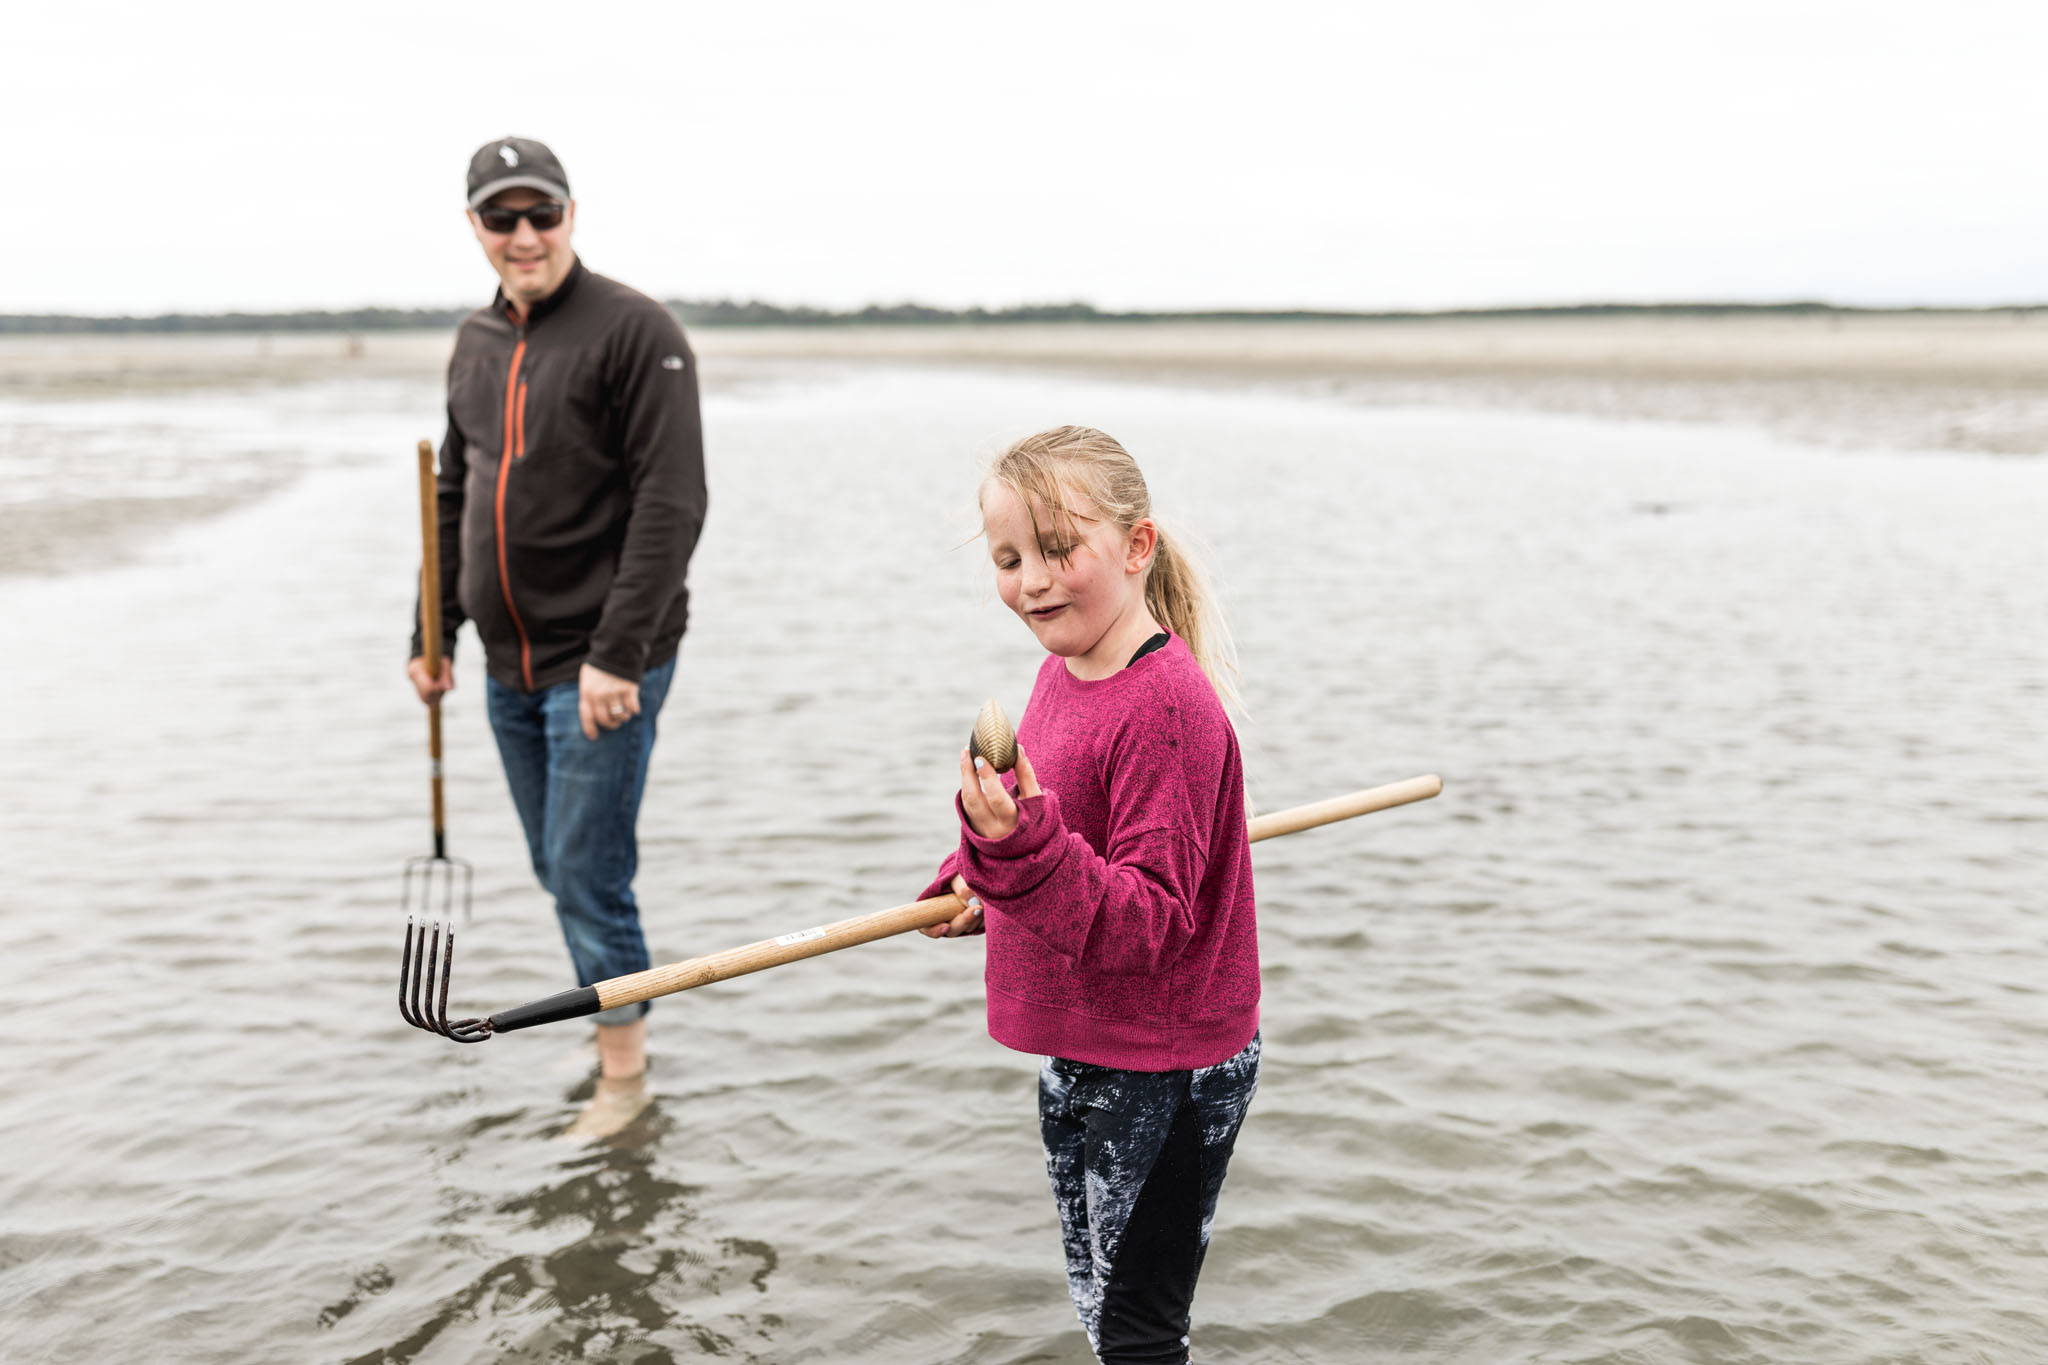 Girl is surprised by the size of the clam she has raked from the sand